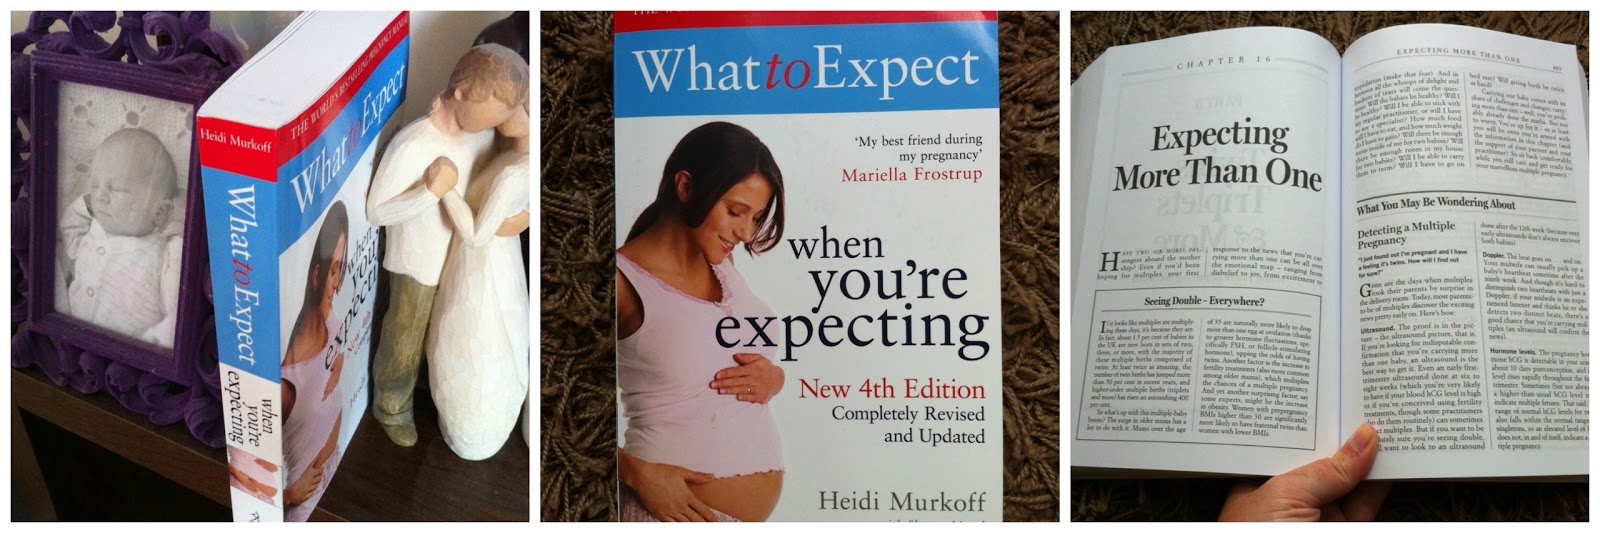 SO YOURE EXPECTING TO BE A GRANDPARENT MORE THAN 50 THINGS YOU By Mary Mint